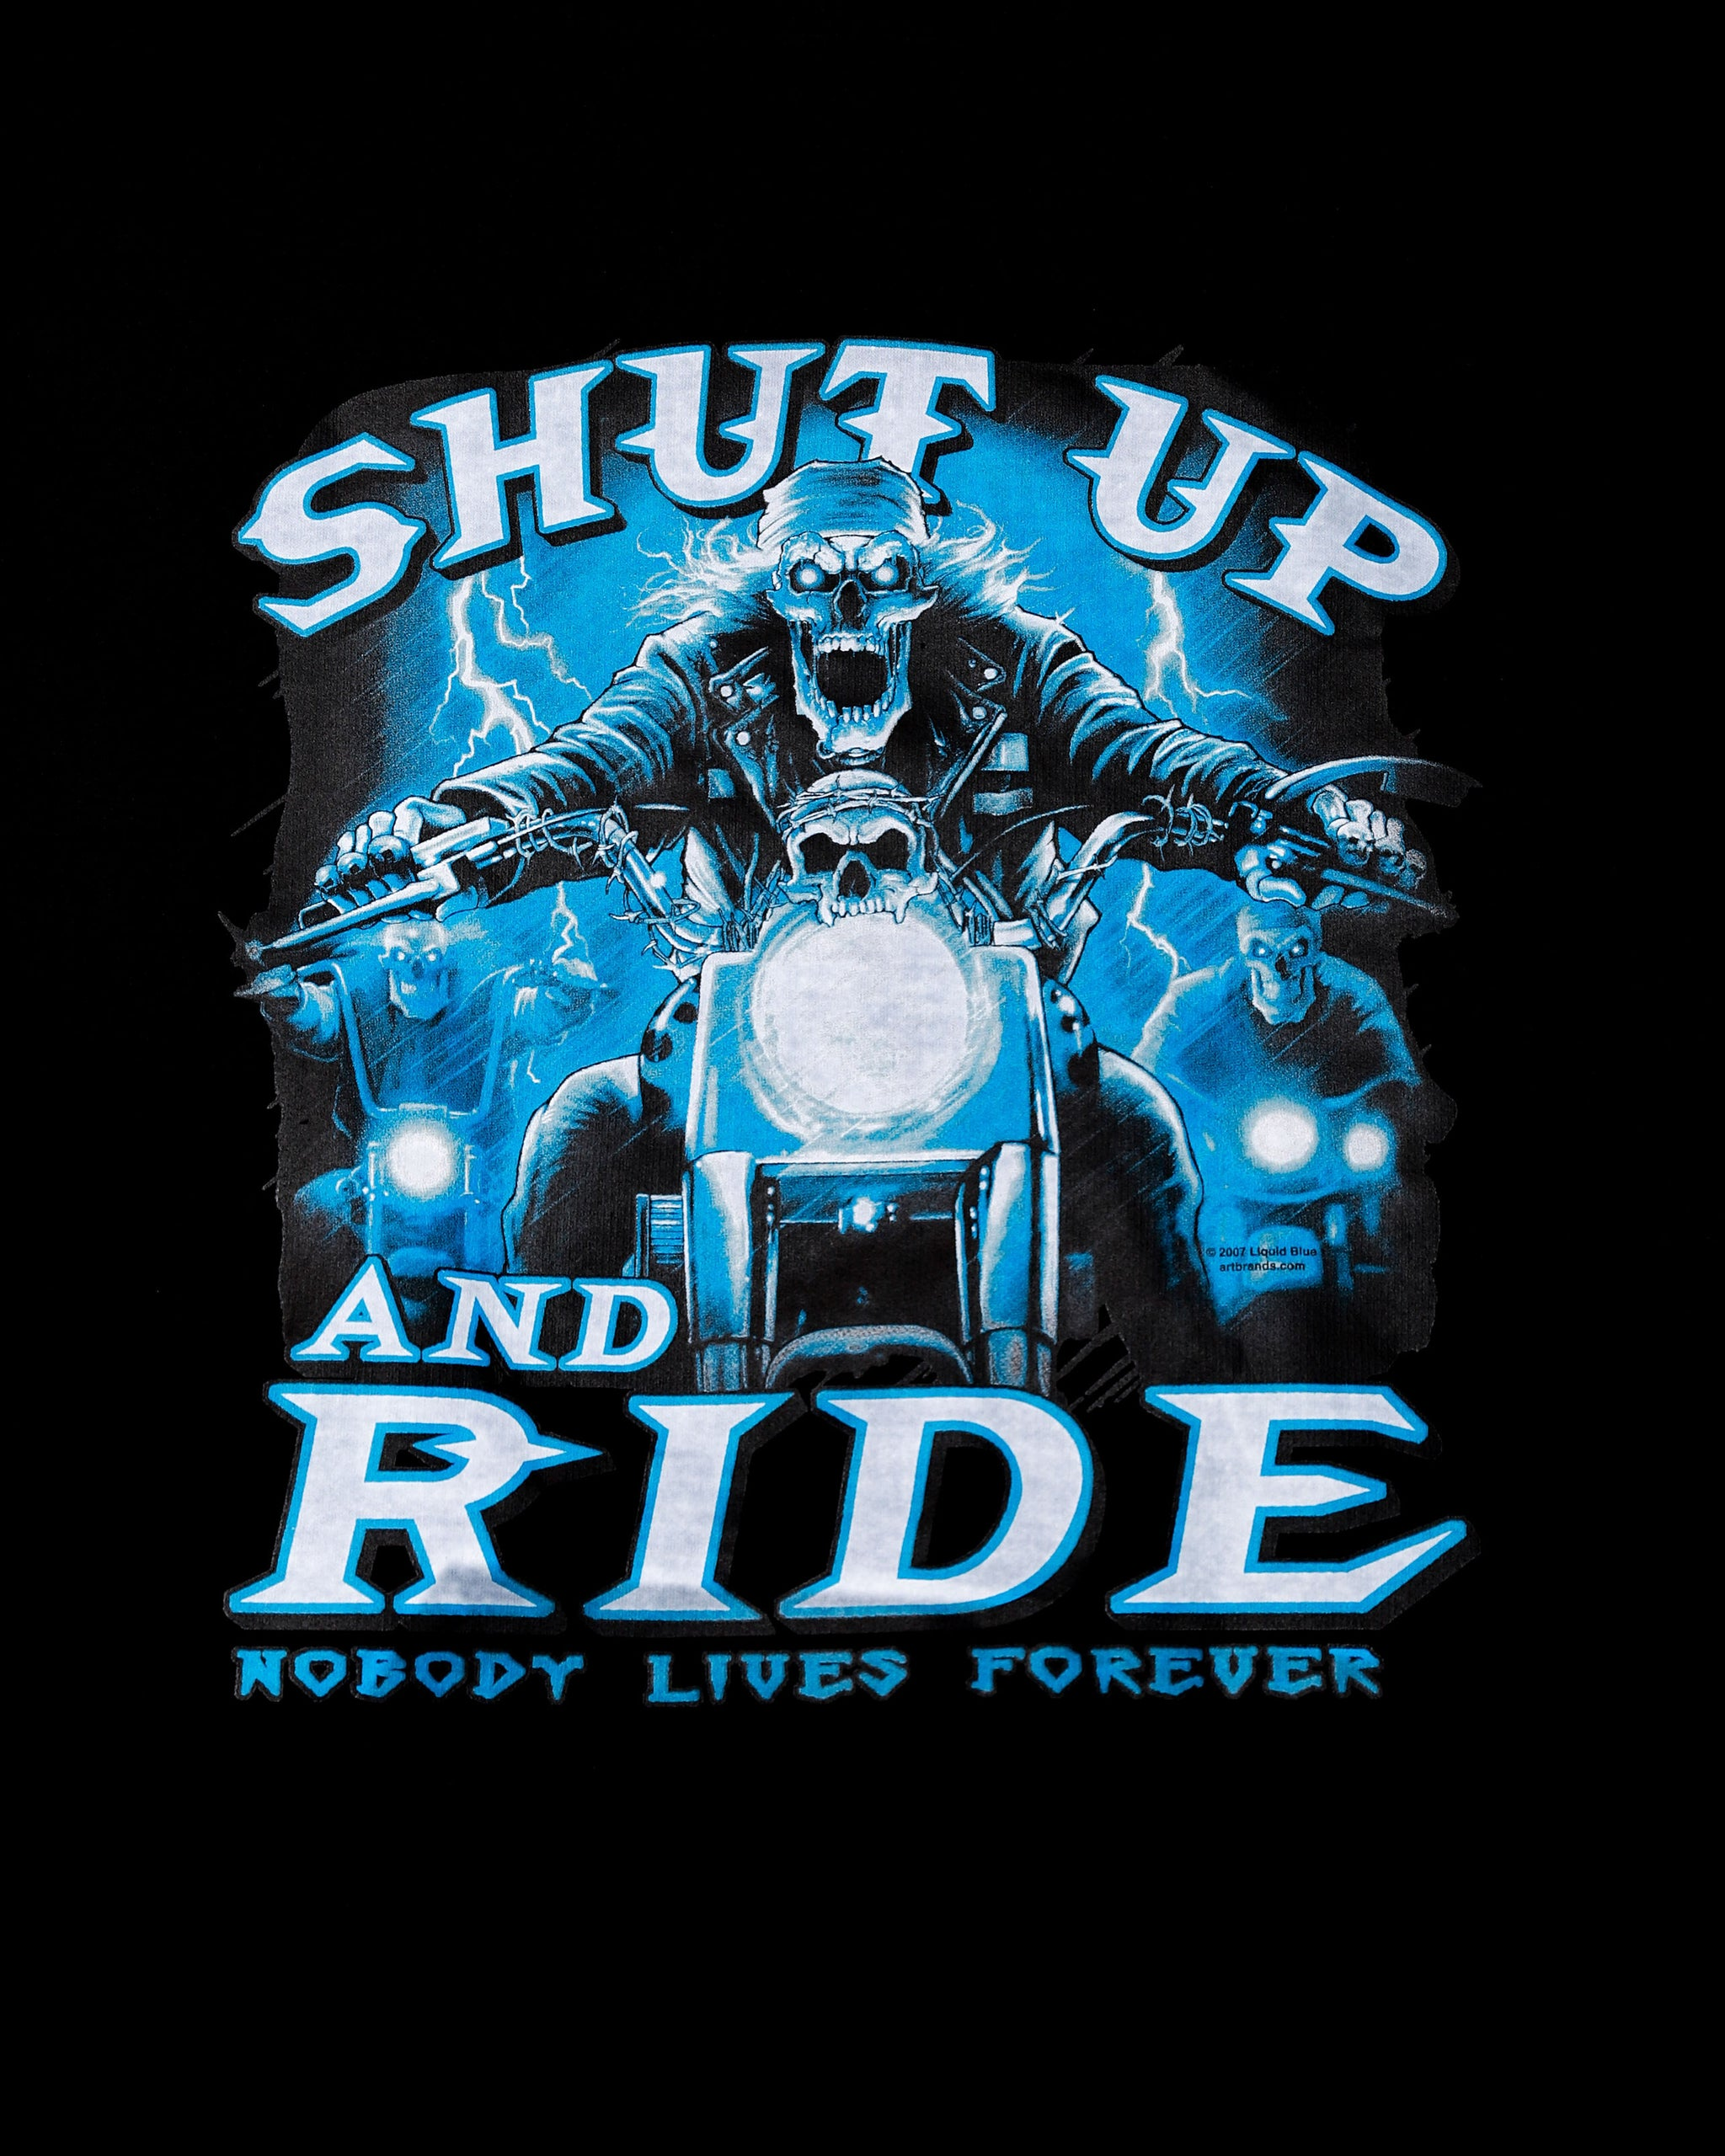 Shut Up and Ride Biker Black Hooded Sweatshirt